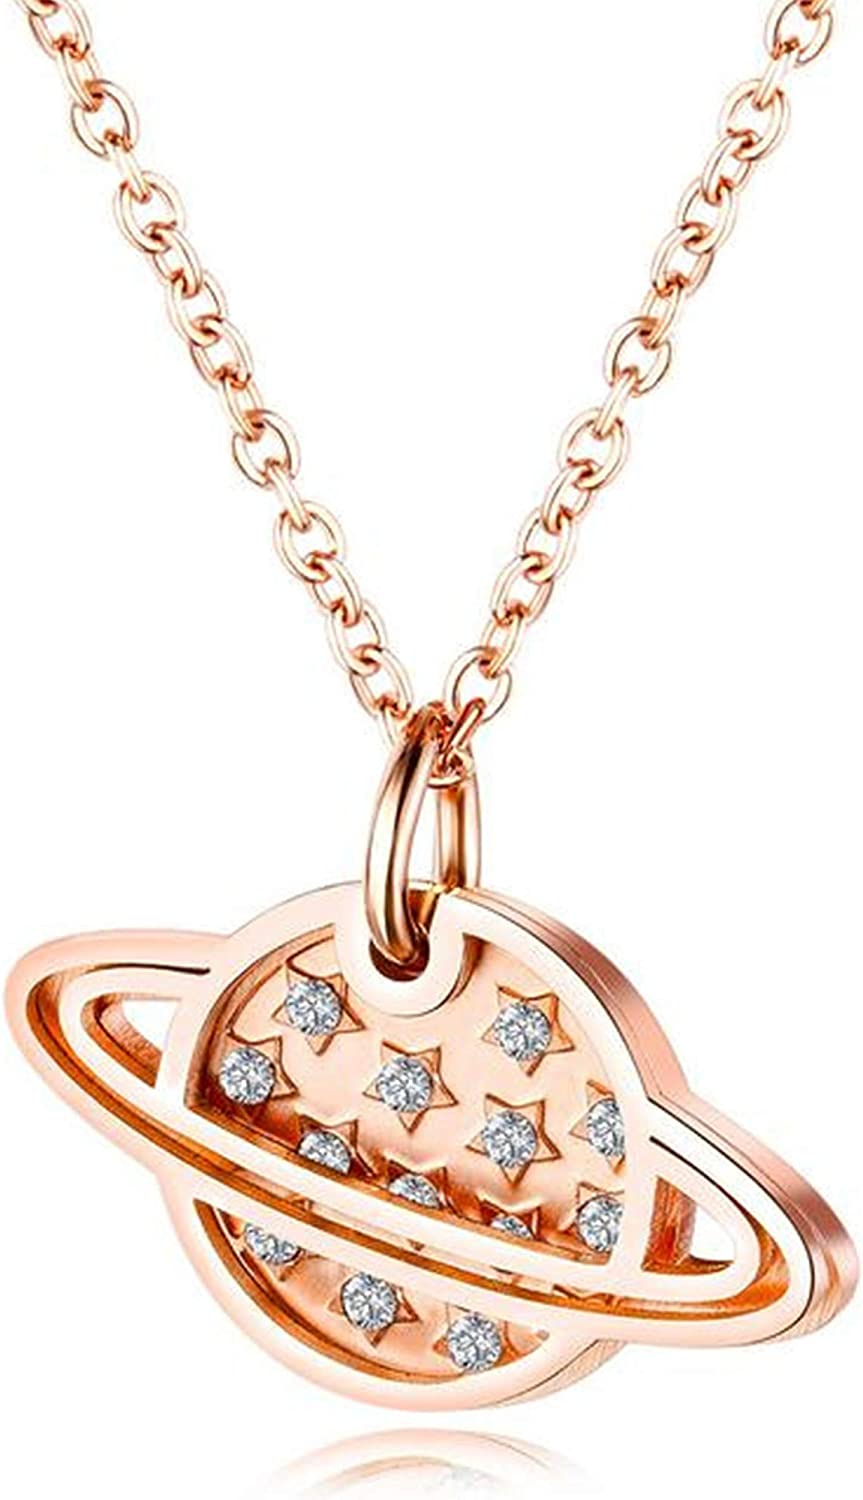 FLDC 18K Rose Gold Plated Adjustable Long Chain Pendant Necklace Personalized Fashion Jewelry